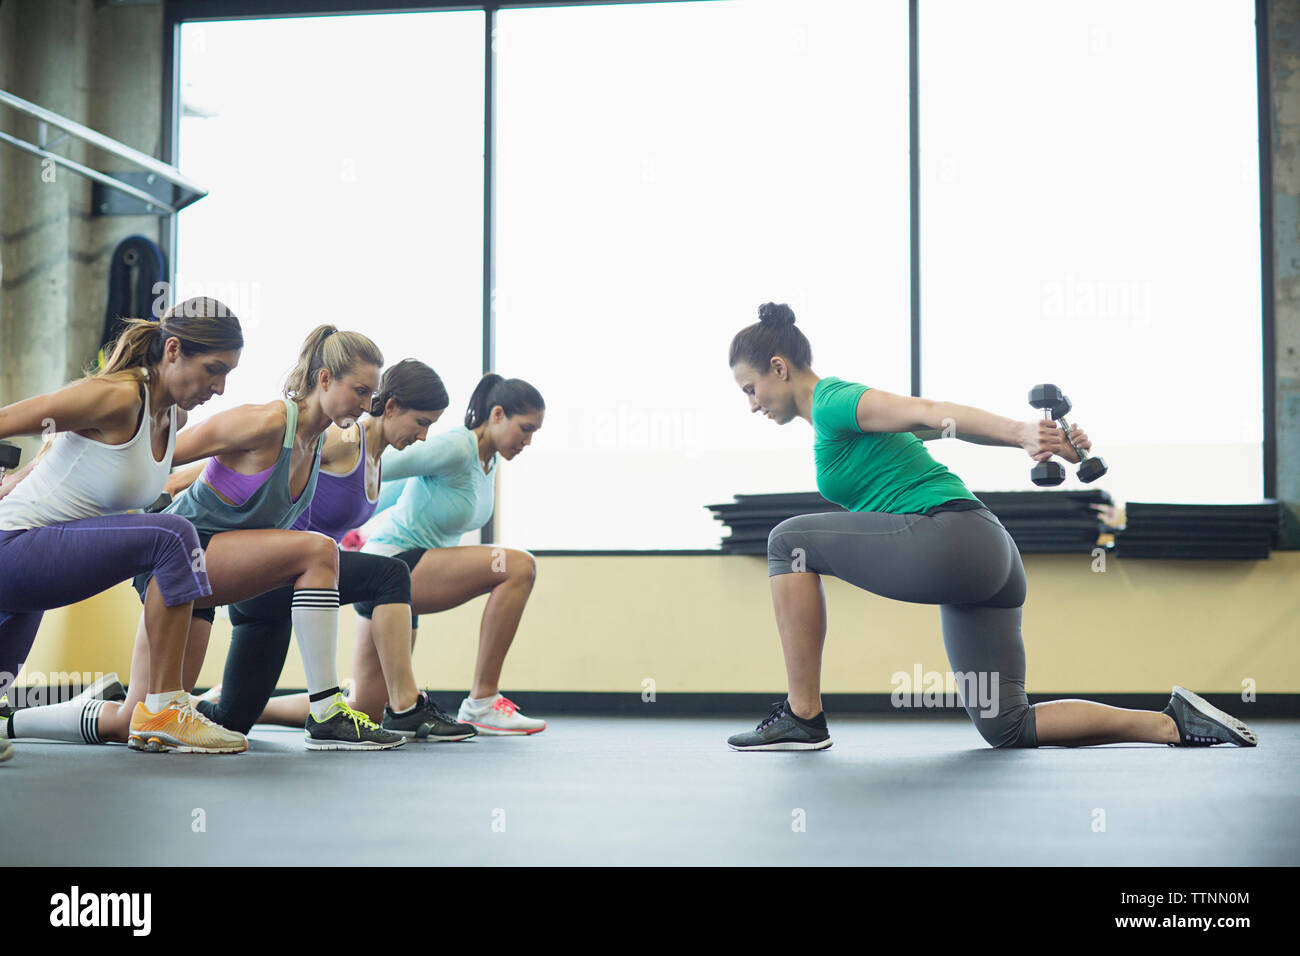 Instructor guiding women in exercising with dumbbells at health club - Stock Image